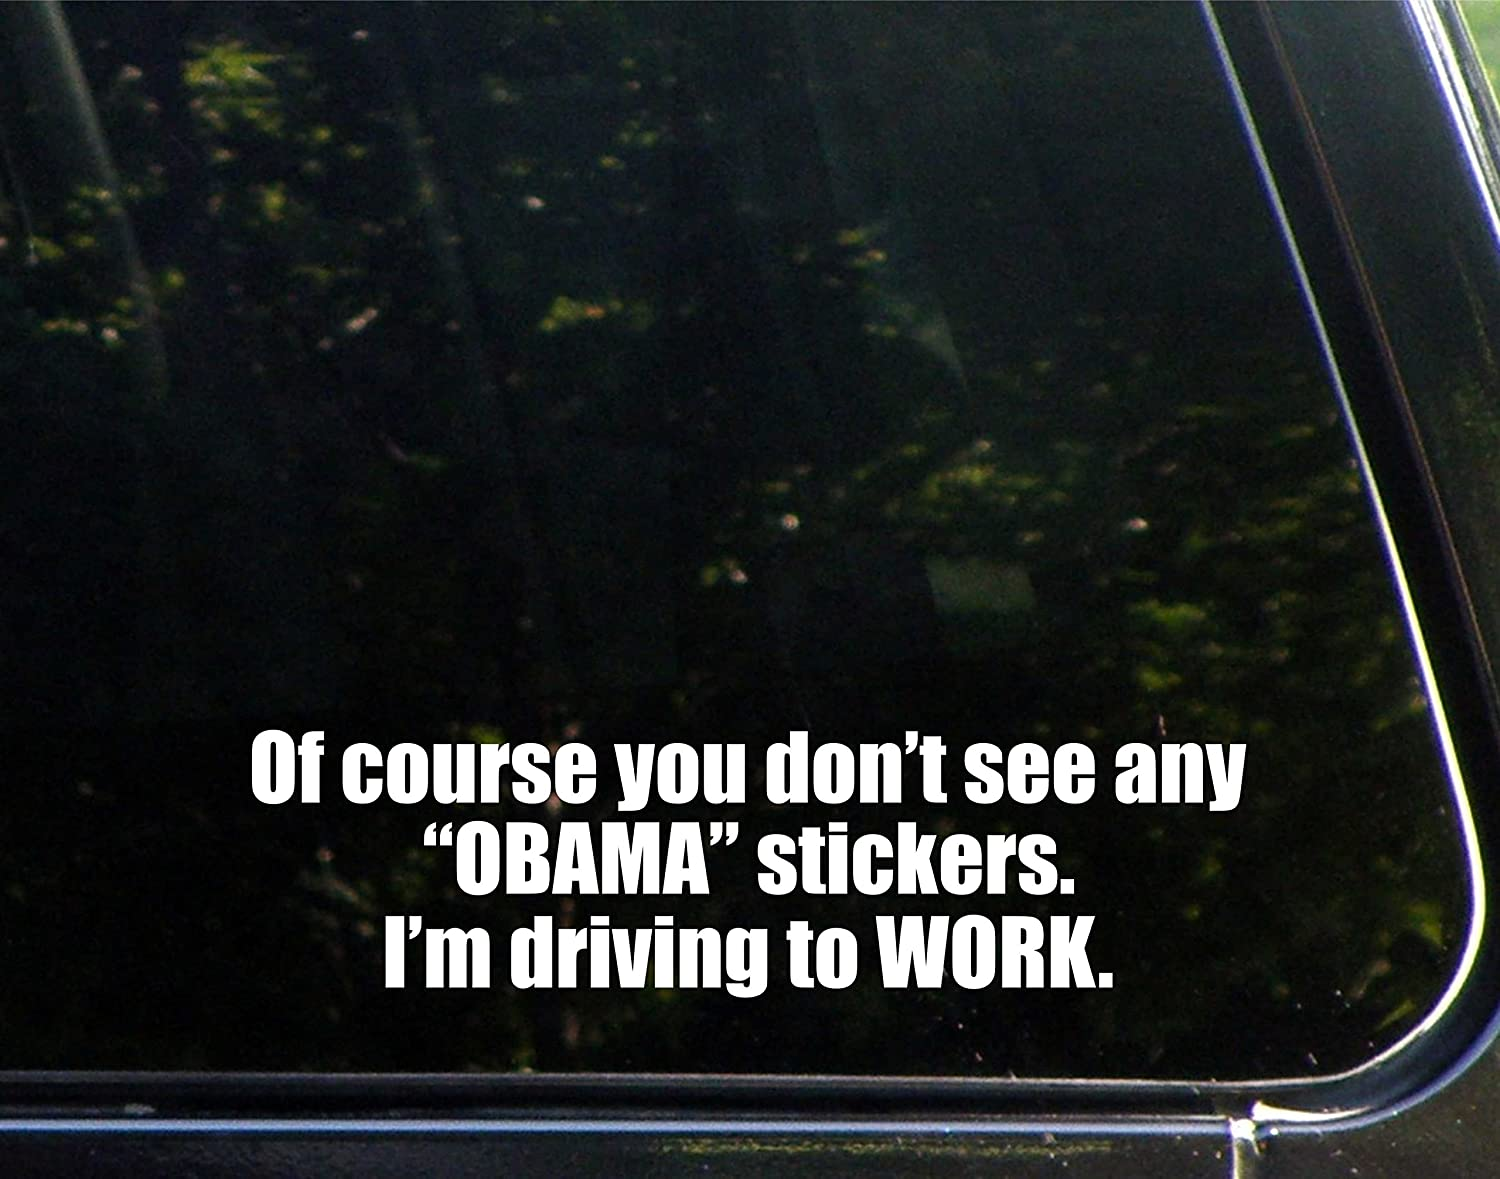 Of course you dont see any obama stickers im driving to work 9 x 2 1 2 vinyl die cut decal bumper sticker for windows cars trucks laptops